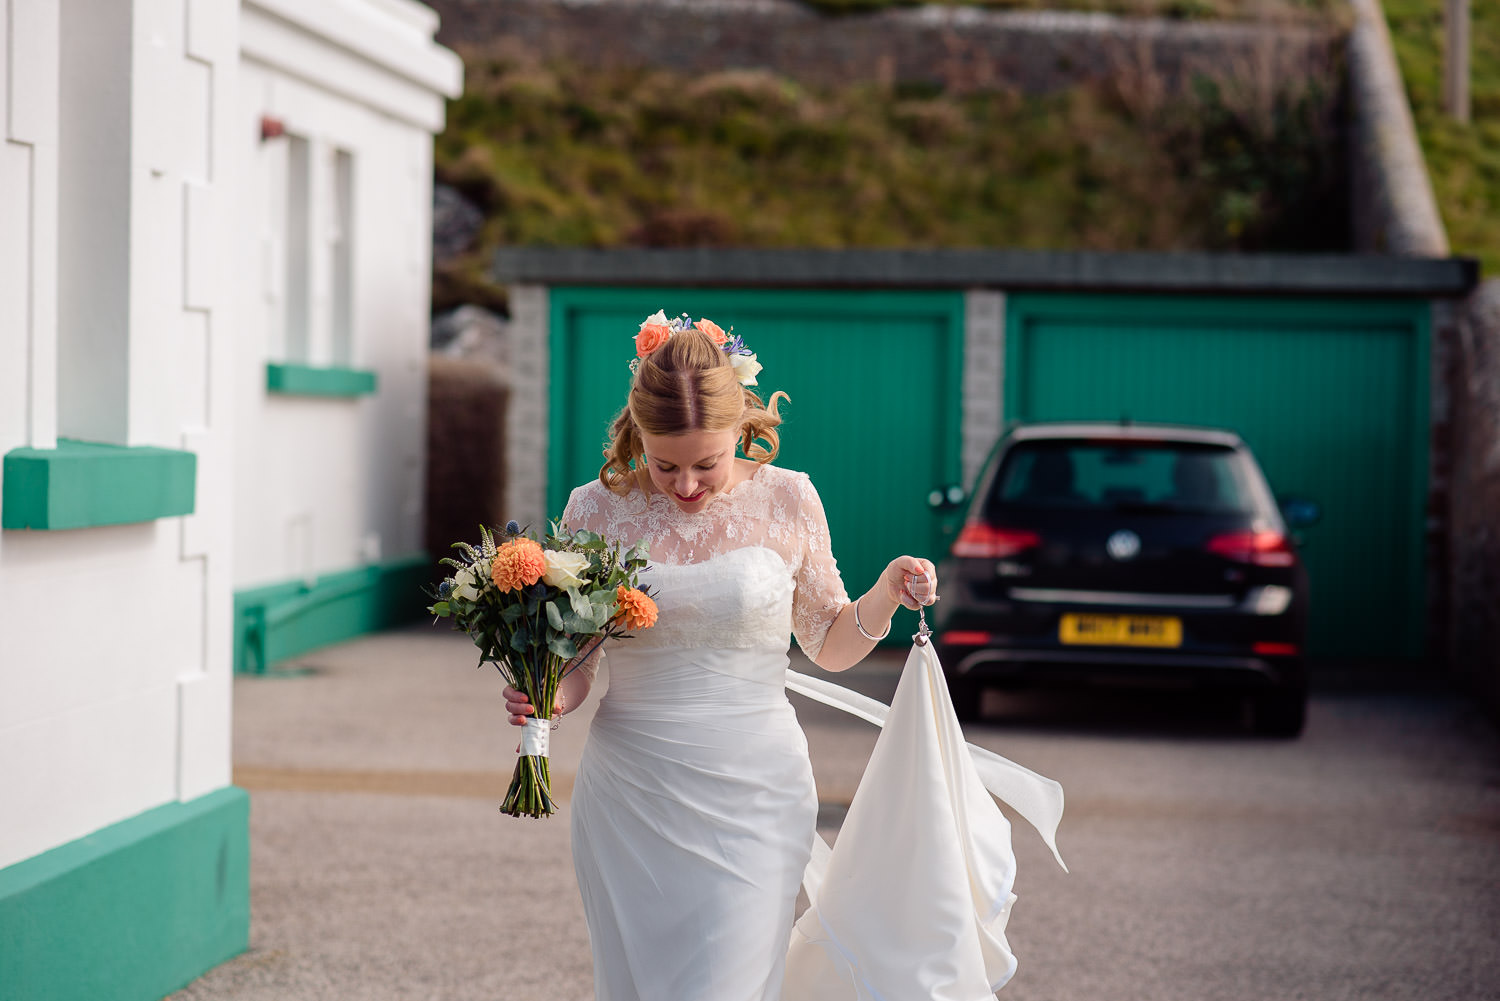 Bride walking to wedding ceremony